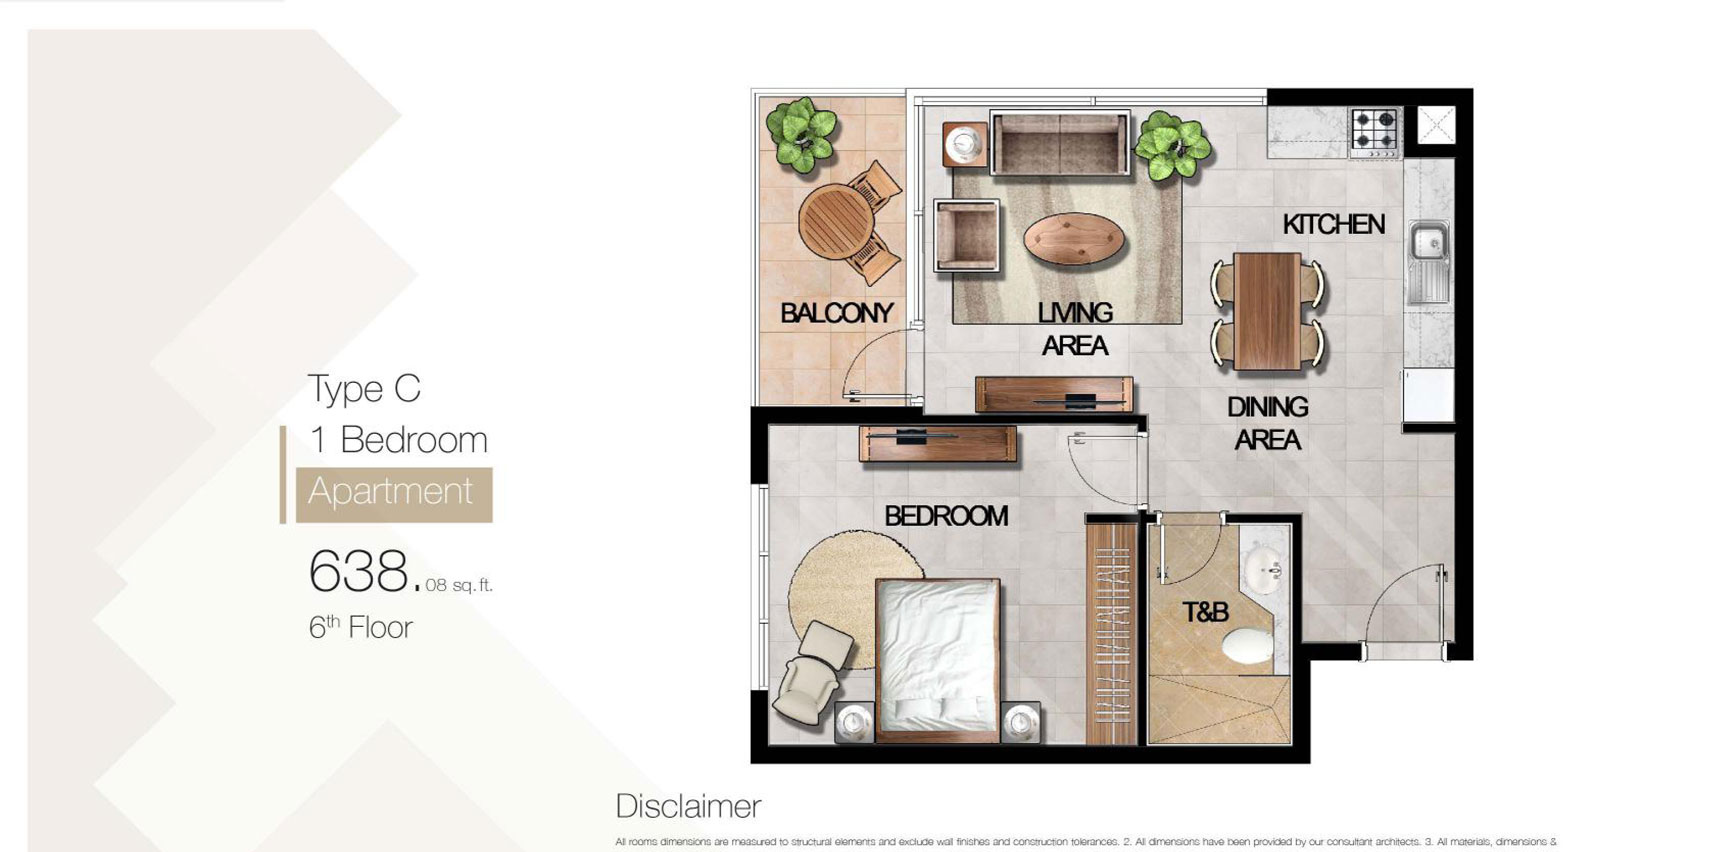 1 Bedroom Type C Size 638.08